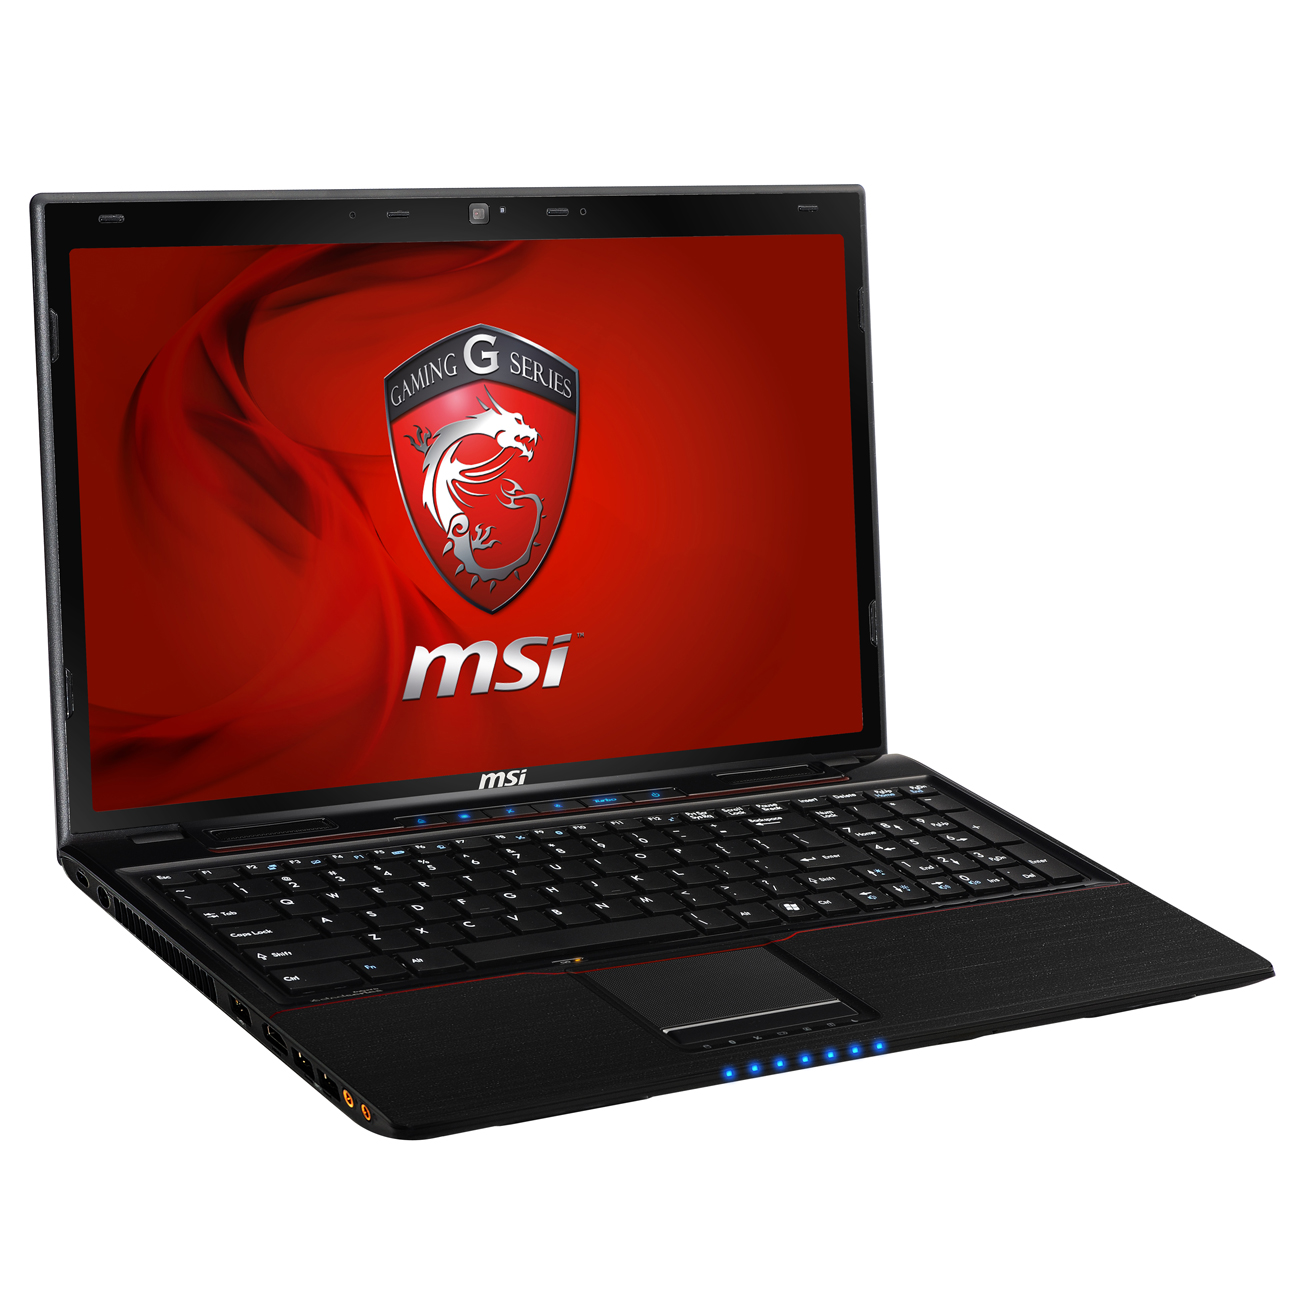 "PC portable MSI GE60 0ND-203FR Intel Core i7-3610QM 8 Go 750 Go 15.6"" LED NVIDIA GeForce GTX 660M Graveur DVD Wi-Fi N/BT Webcam Windows 7 Premium 64 bits (garantie constructeur 2 ans)"